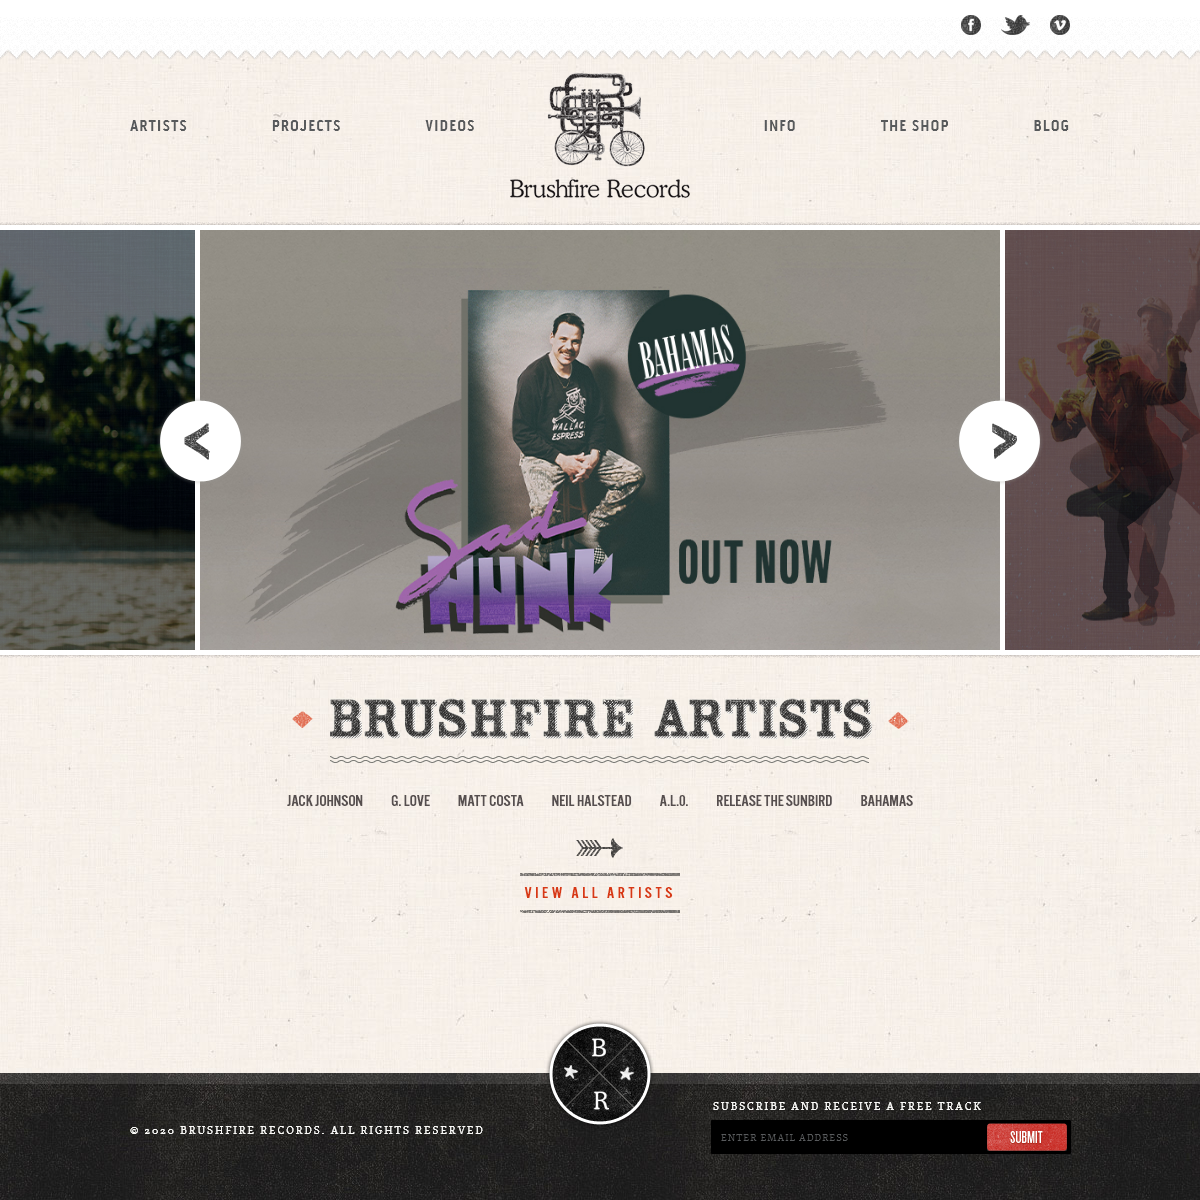 Welcome to Brushfire Records